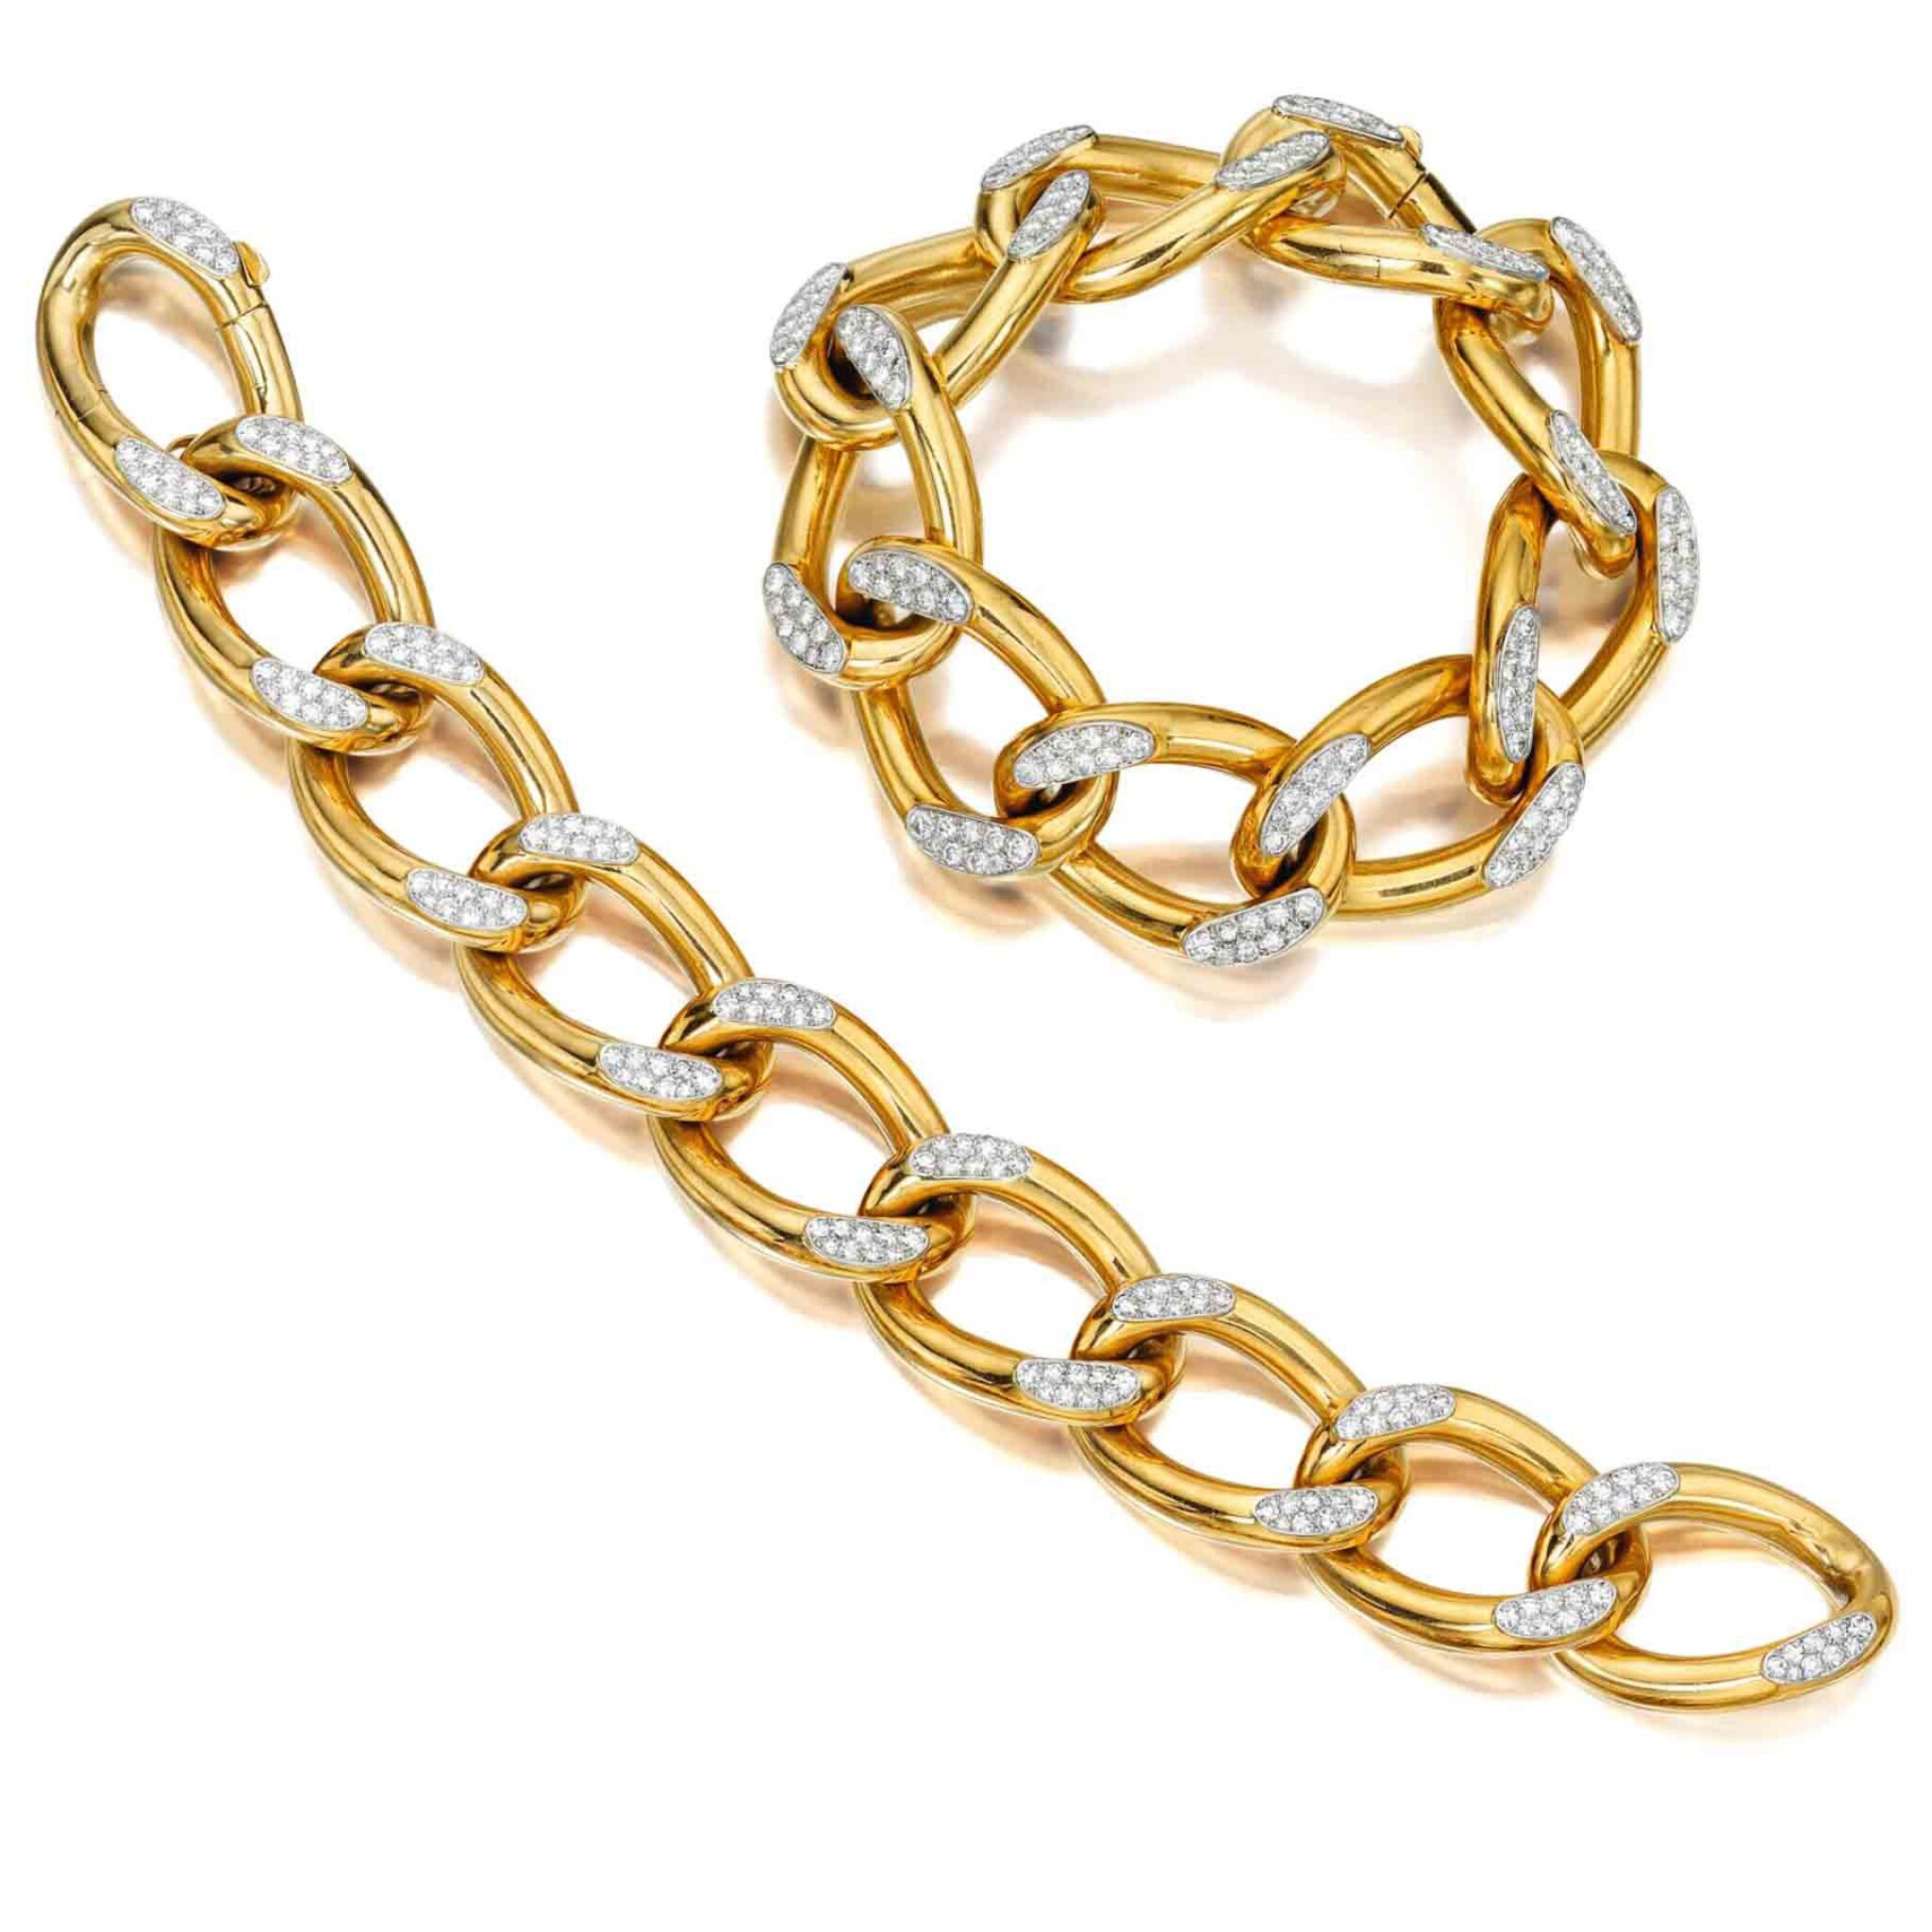 View full screen - View 1 of Lot 230. Pair of Gold and Diamond Bracelets, France.